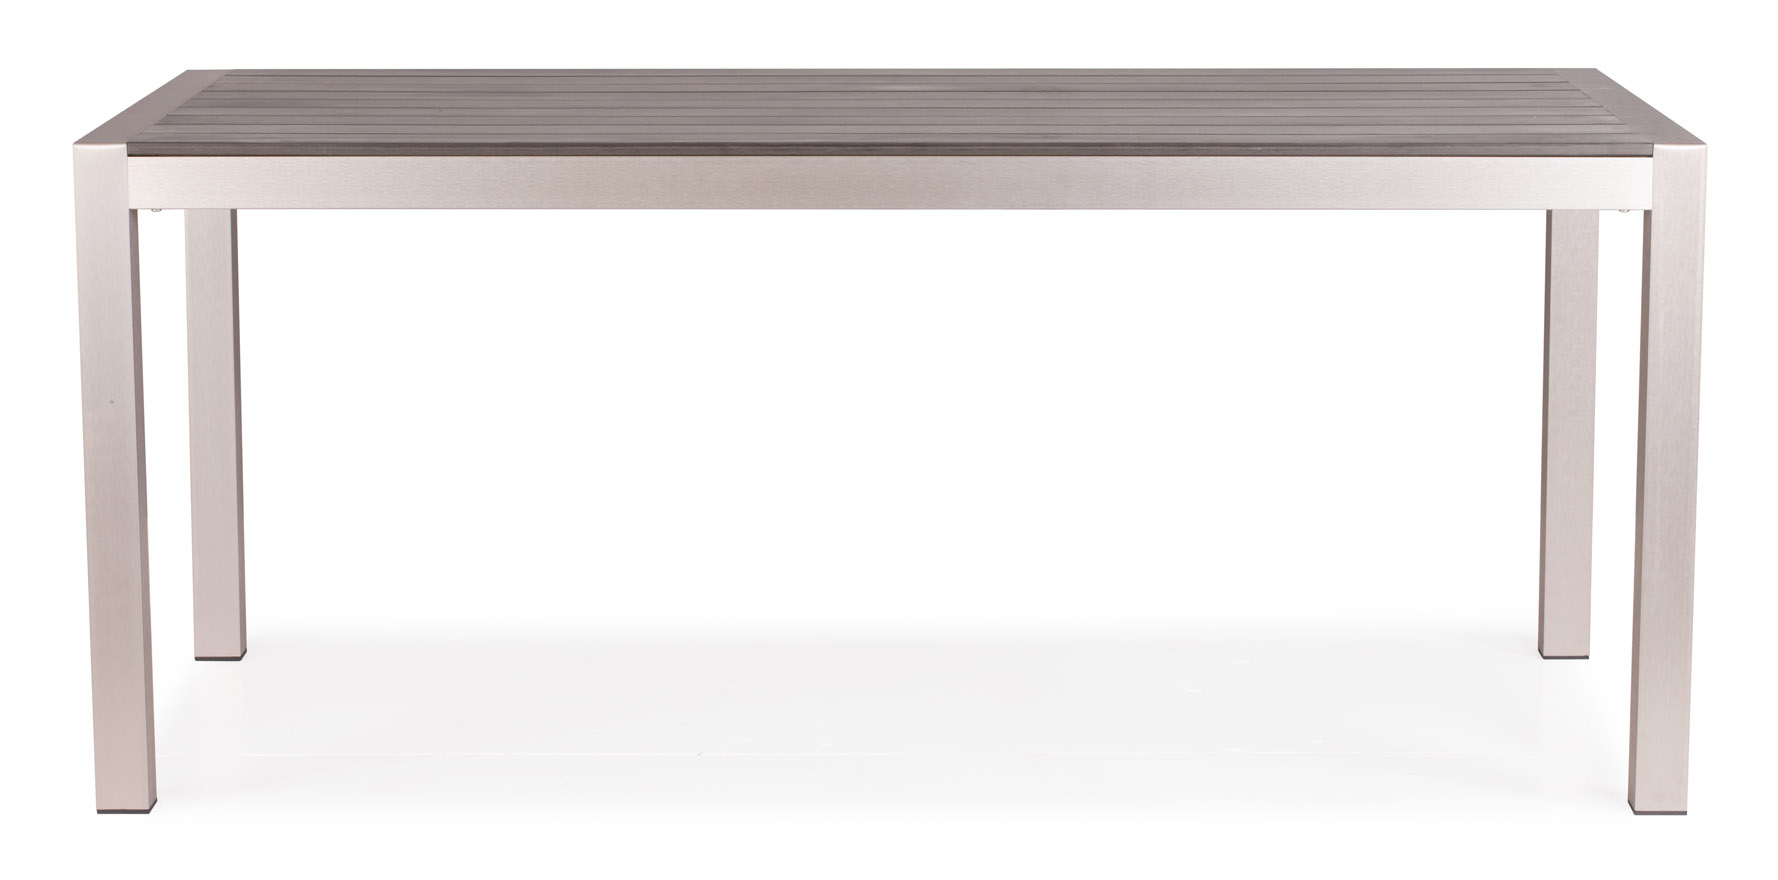 Luzern Gray Brushed Aluminum and Faux Wood Outdoor Dining Table  Zuri Furniture -> Aluminium Table